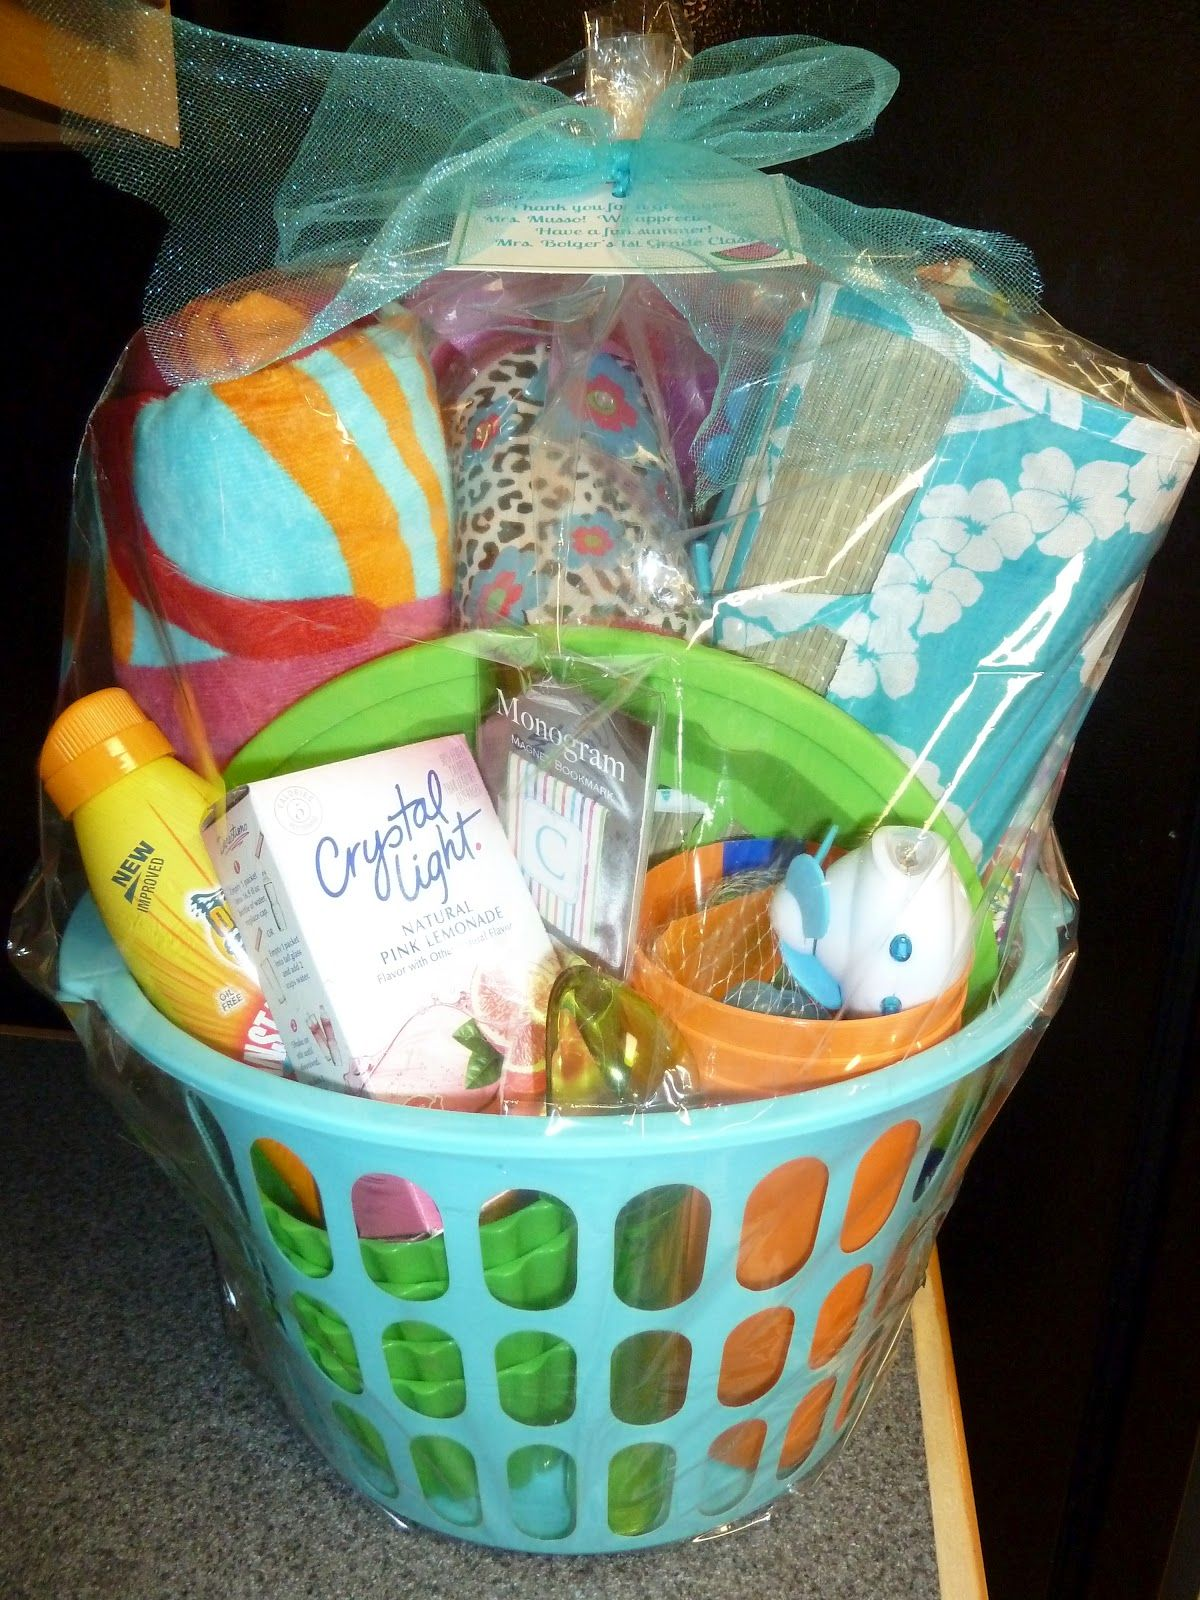 Room mom extraordinaire summer basket gift ideas pinterest room mom extraordinaire summer basket negle Images